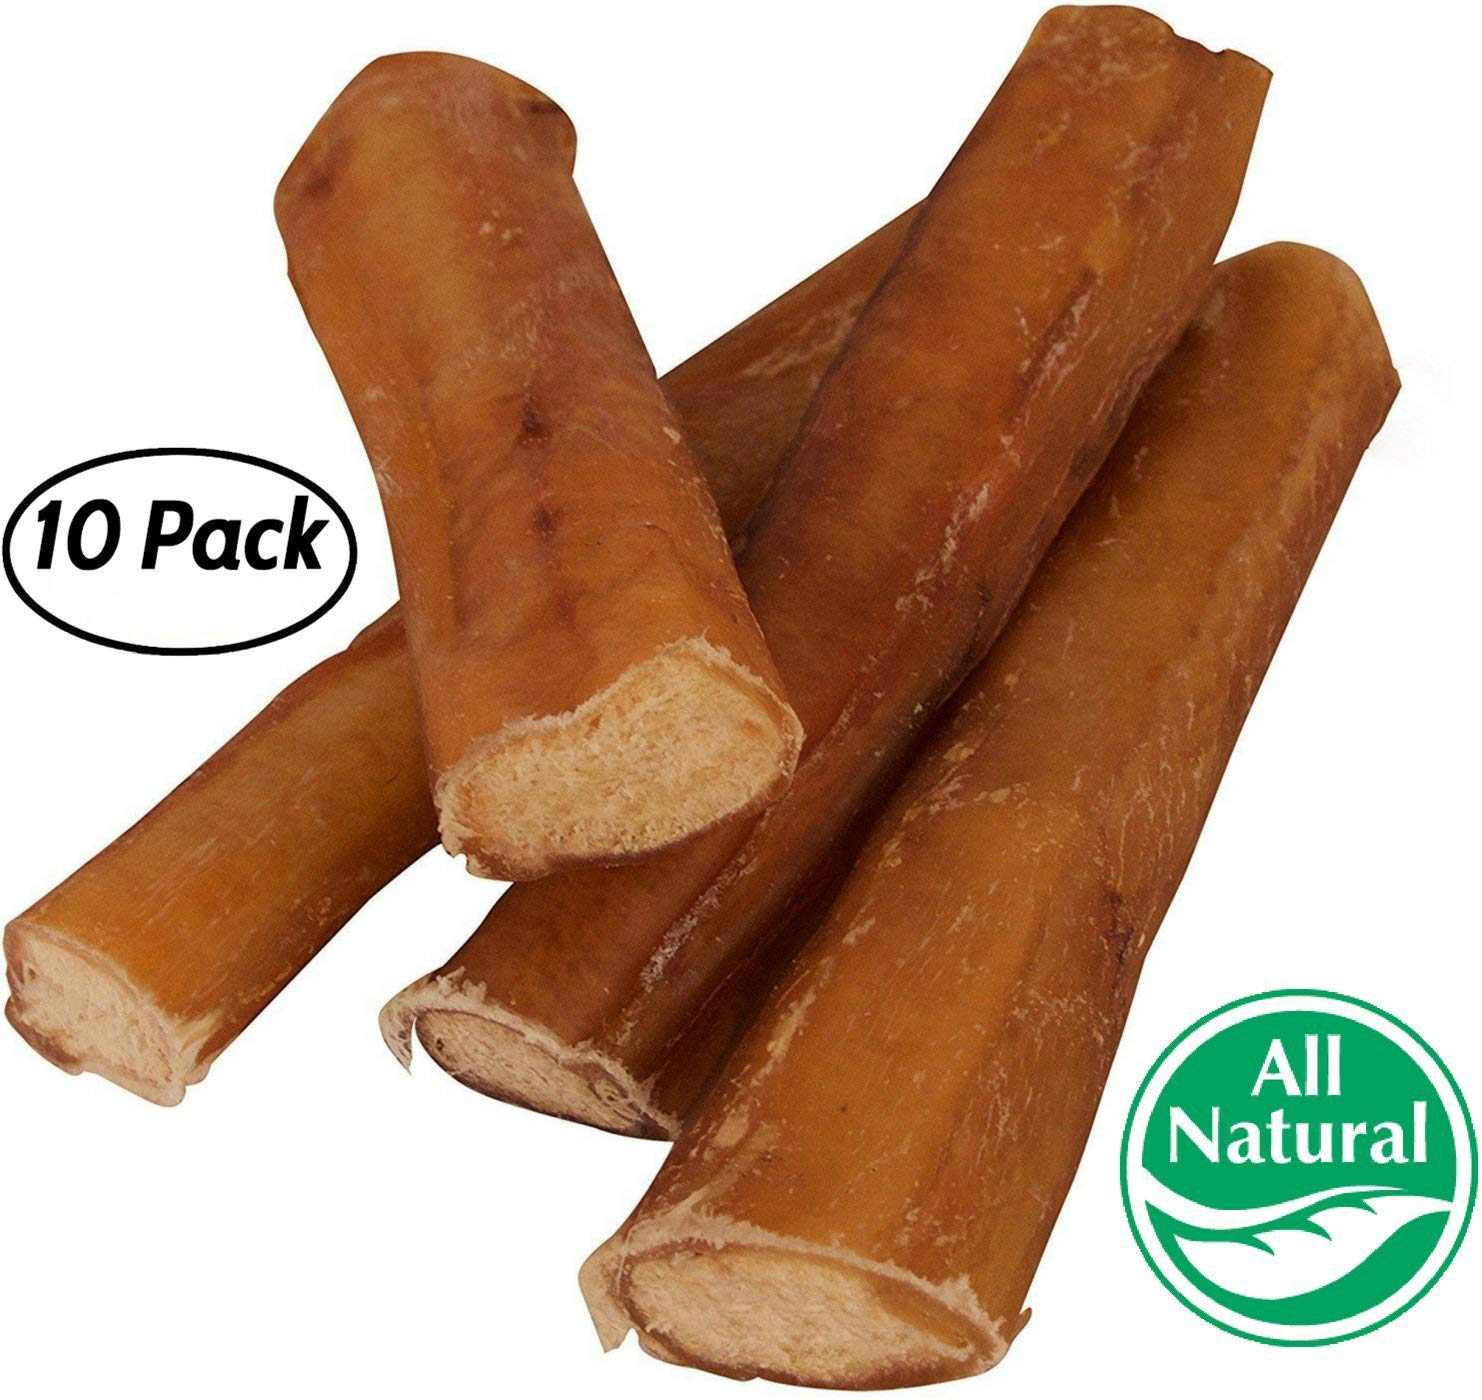 10 Stick(s) 5  Straight Bully Sticks for Dogs [Large Thickness] (10 Pack) Natural Low Odor Bulk Dog Dental Treats, Best Thick Pizzle Chew Stix, 5 inch, Chemical Free